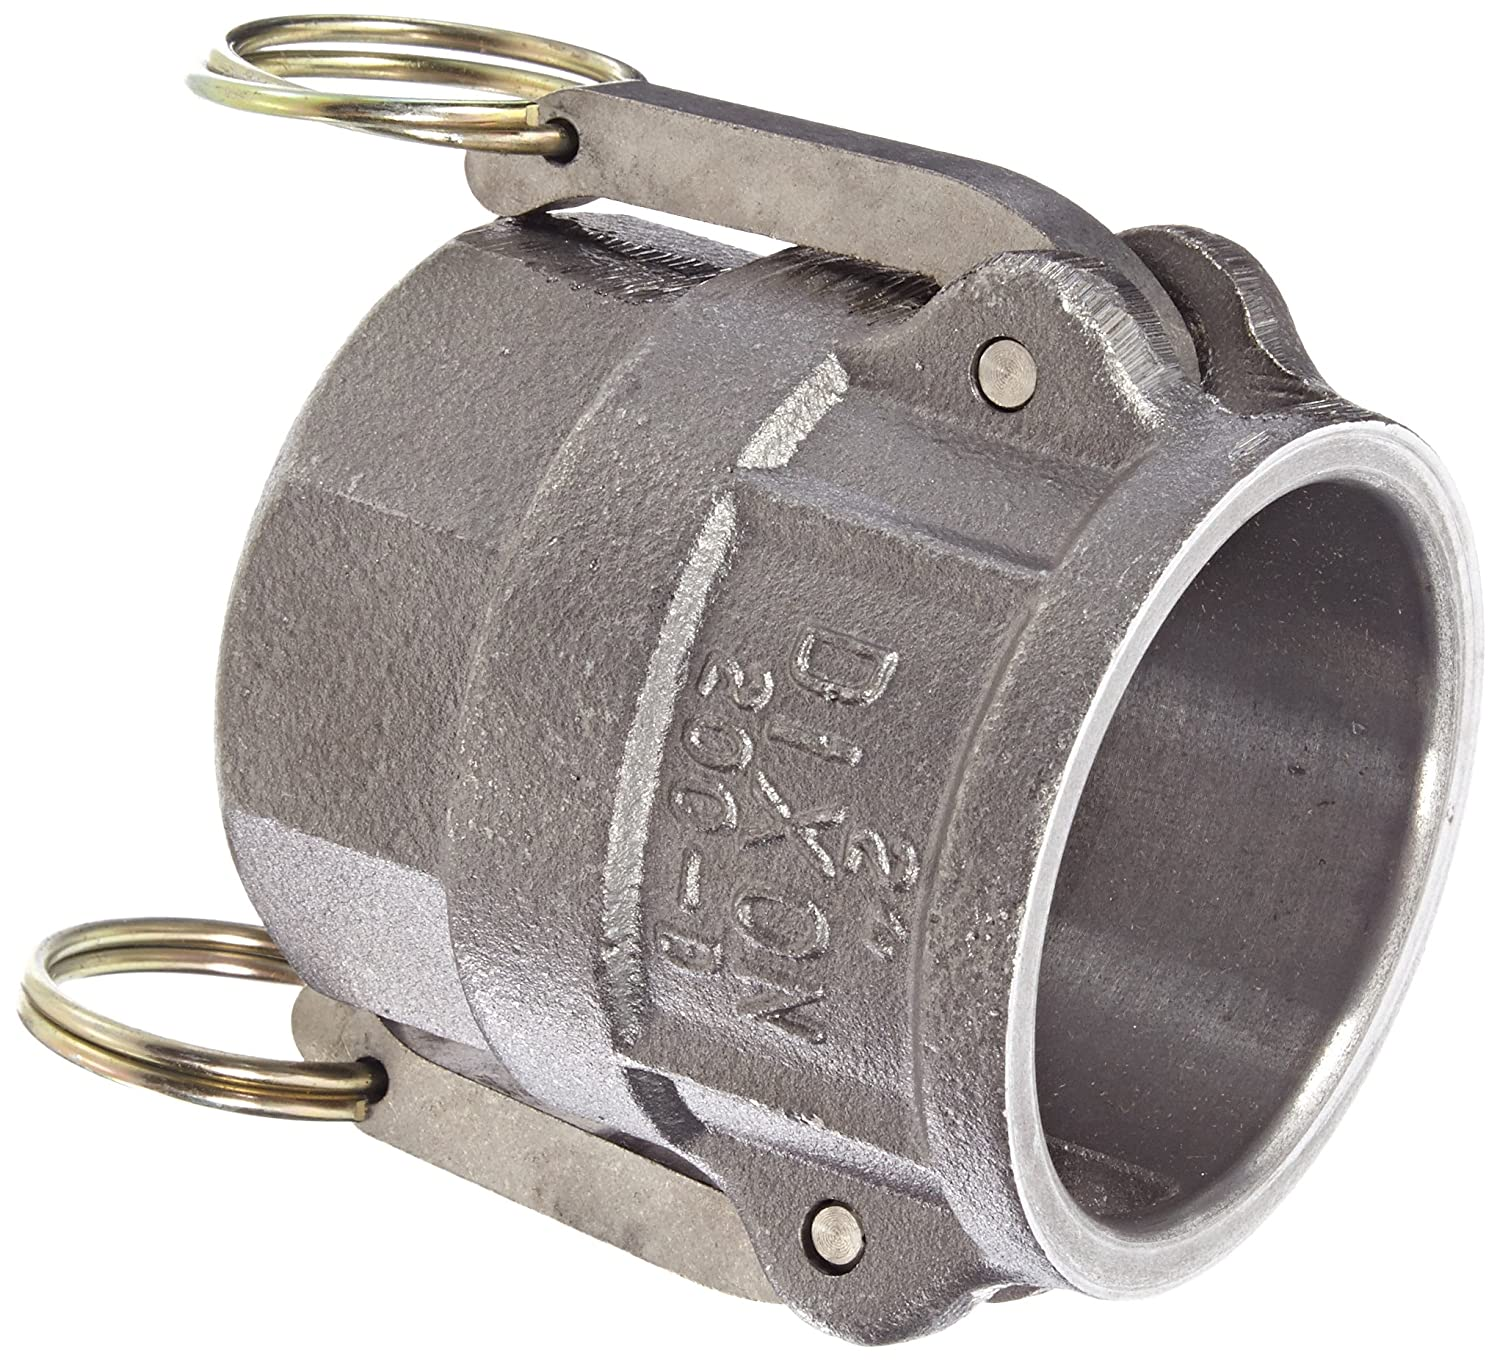 Dixon 300-D-MI Unplated Iron Type D Cam and Groove Hose Fitting 3 Socket x 3 NPT Female 3 Socket x 3 NPT Female Dixon Valve /& Coupling